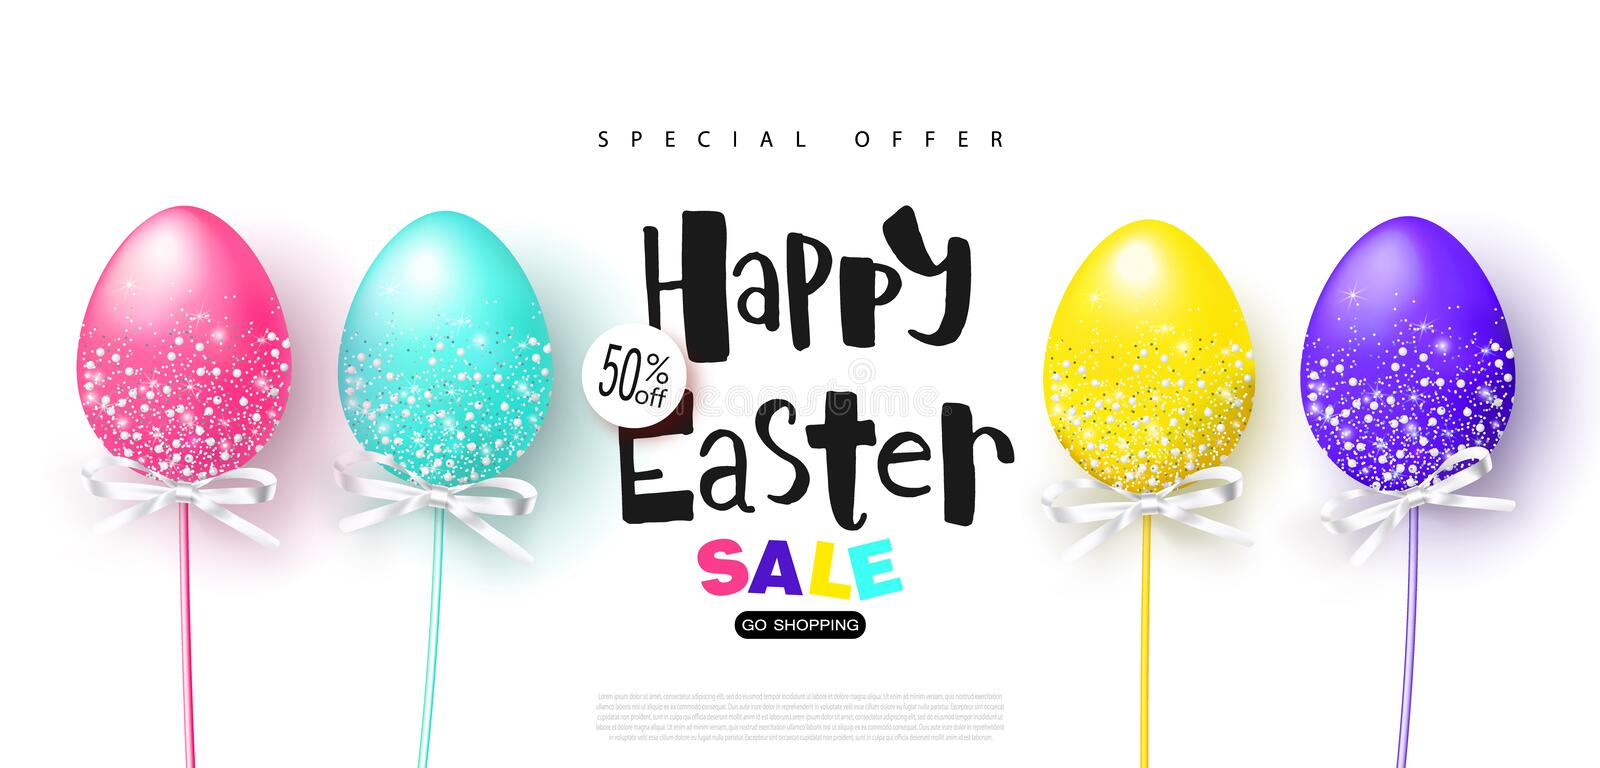 Happy Easter sale banner.Background with beautiful colorful eggs. Vector illustration for posters, coupons, promotional material. royalty free illustration